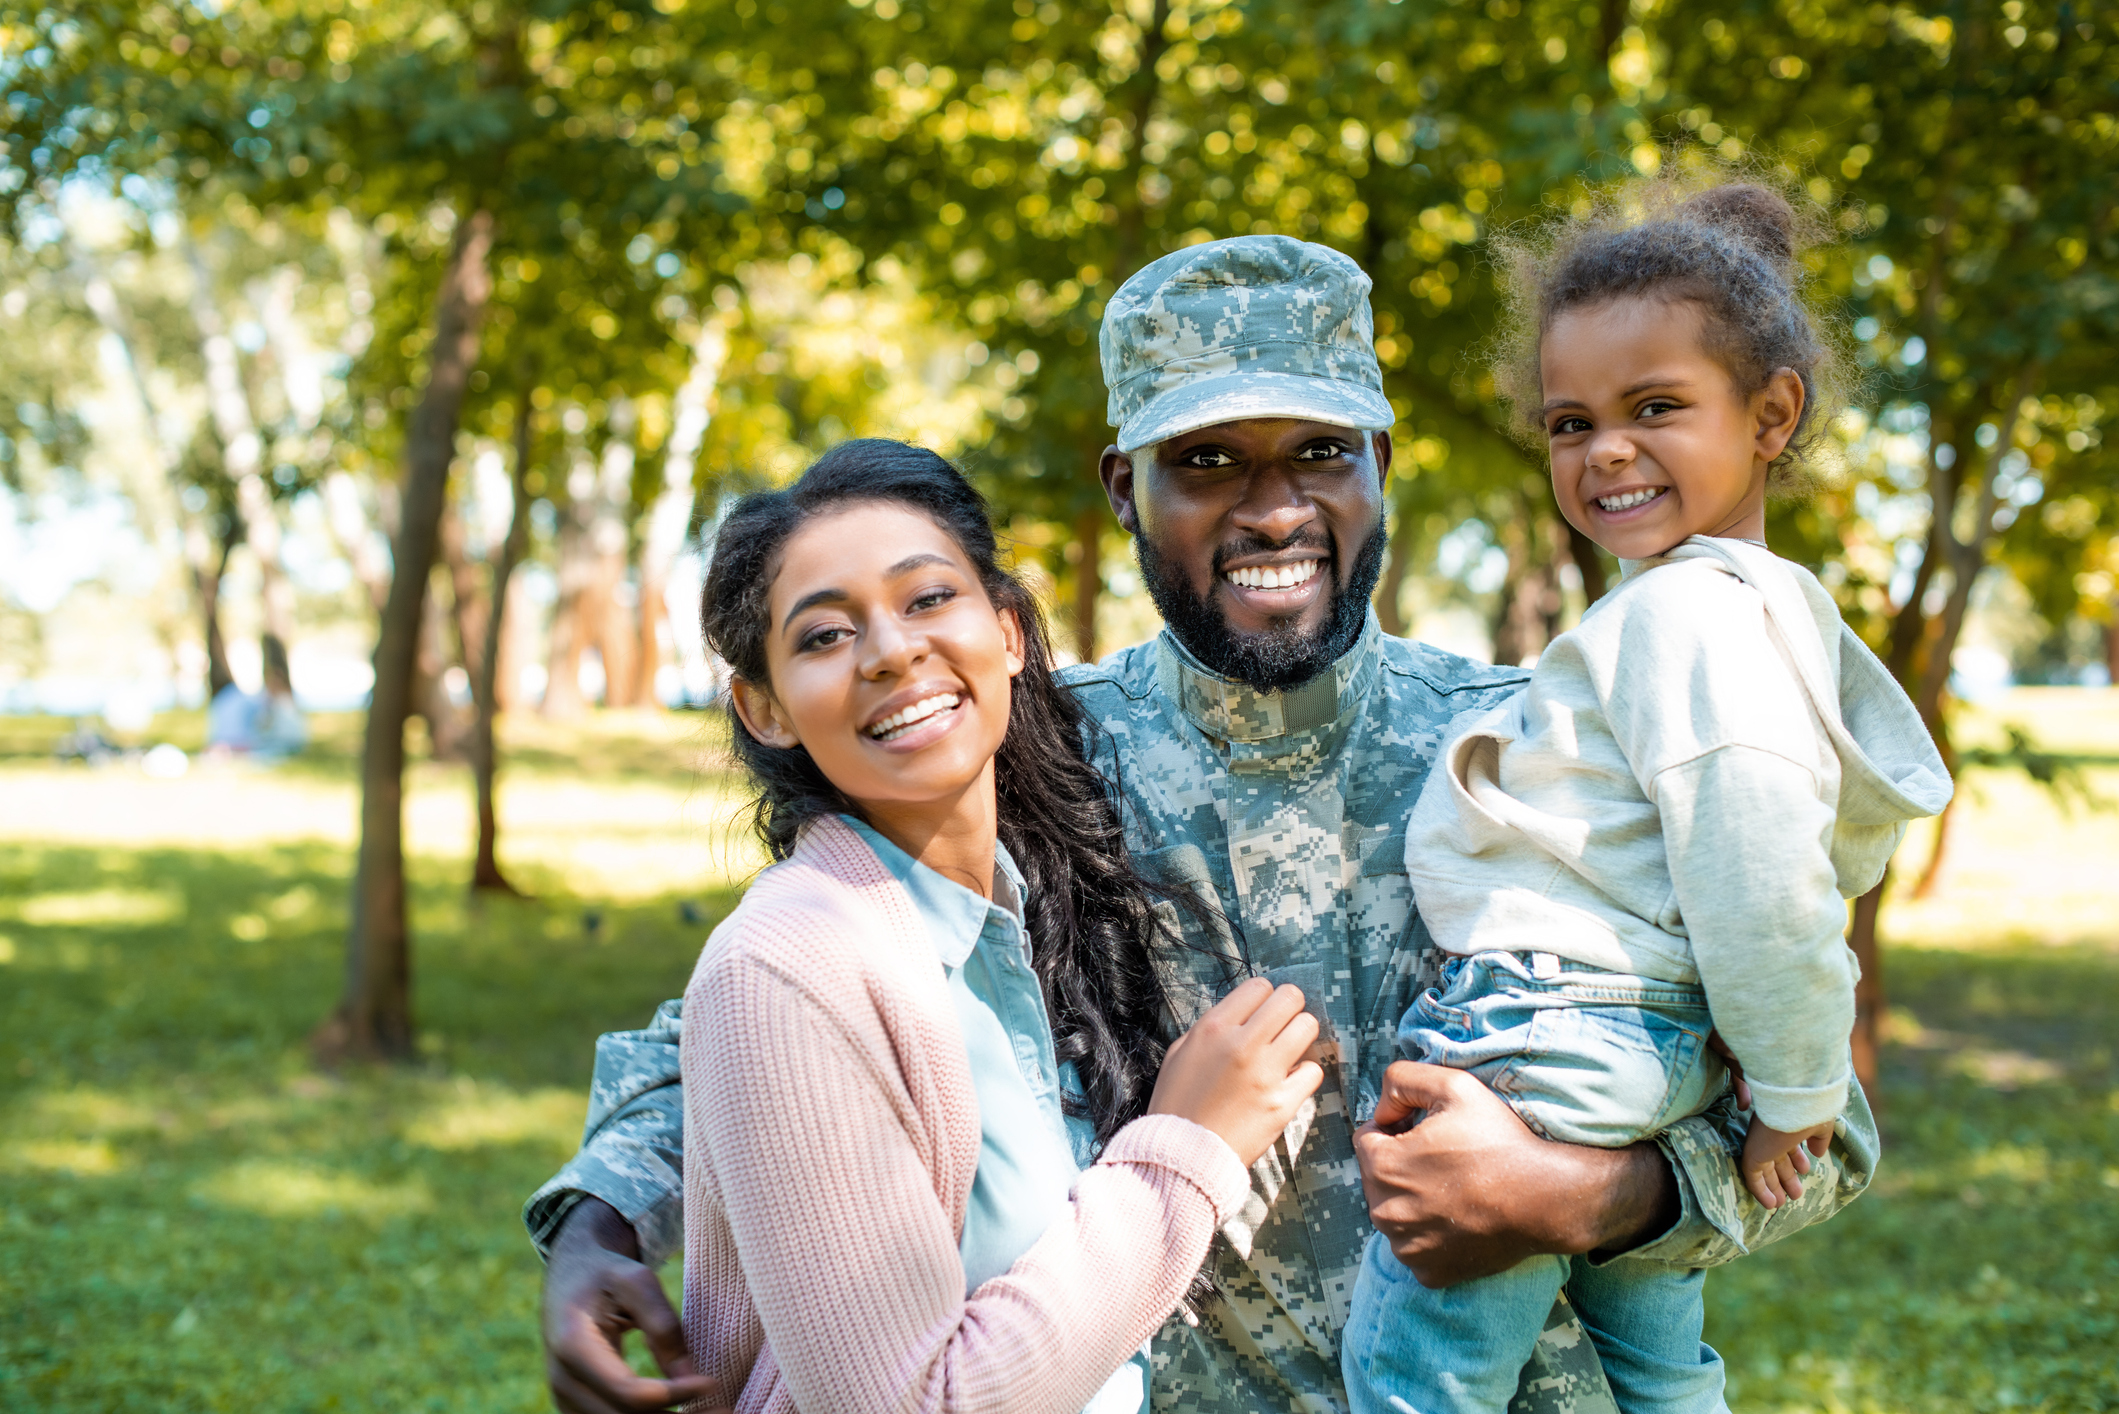 The 169 Best Military Discounts in 2019